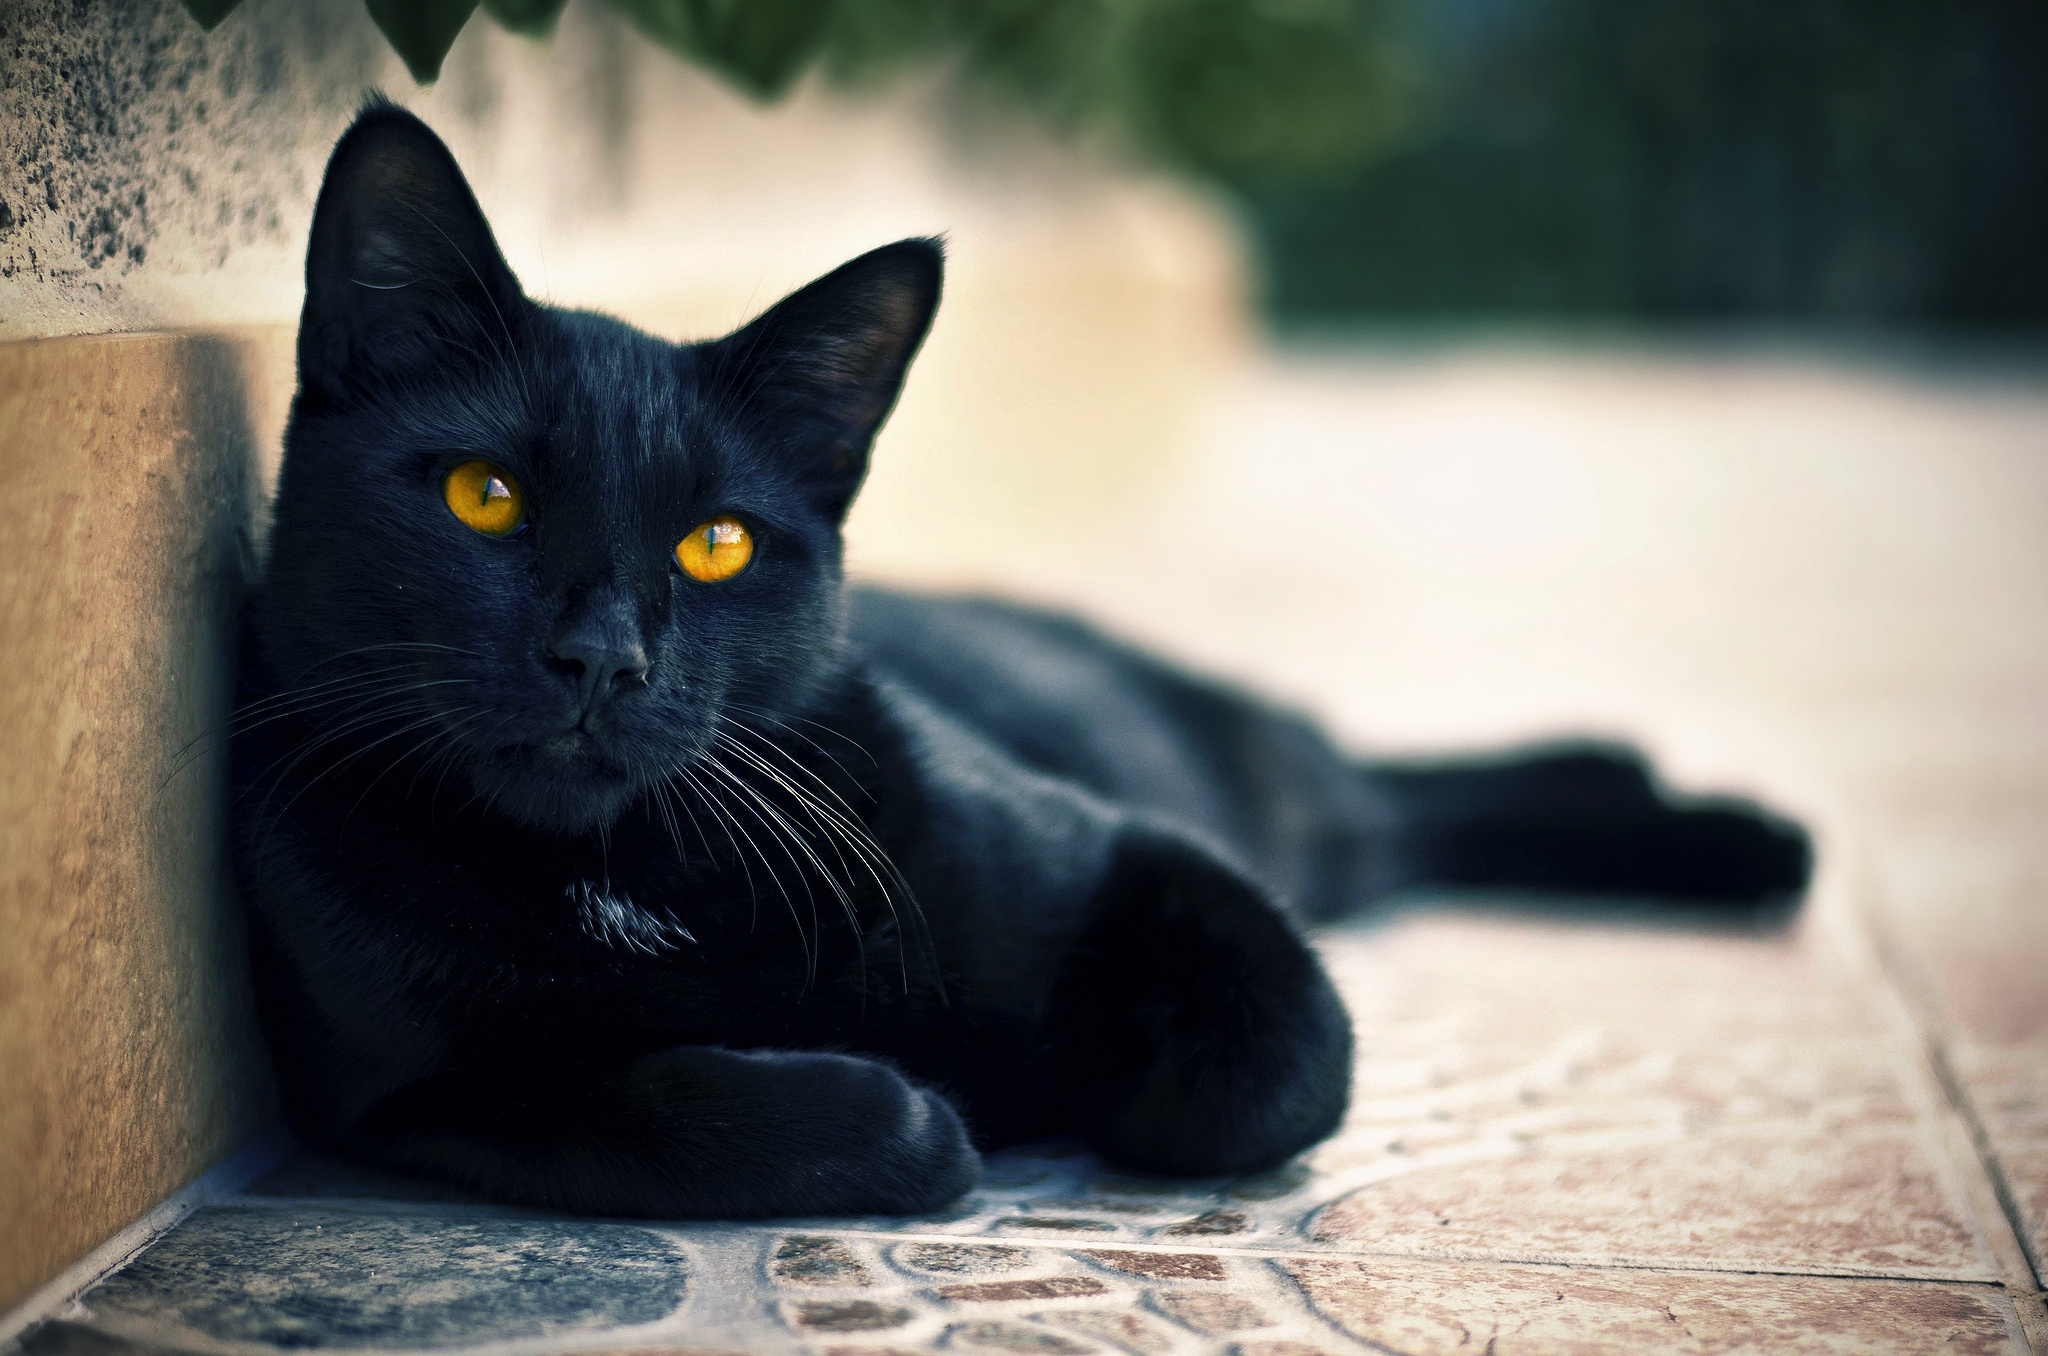 151030 download wallpaper Animals, Black Cat, To Lie Down, Lie, Muzzle, Sight, Opinion screensavers and pictures for free